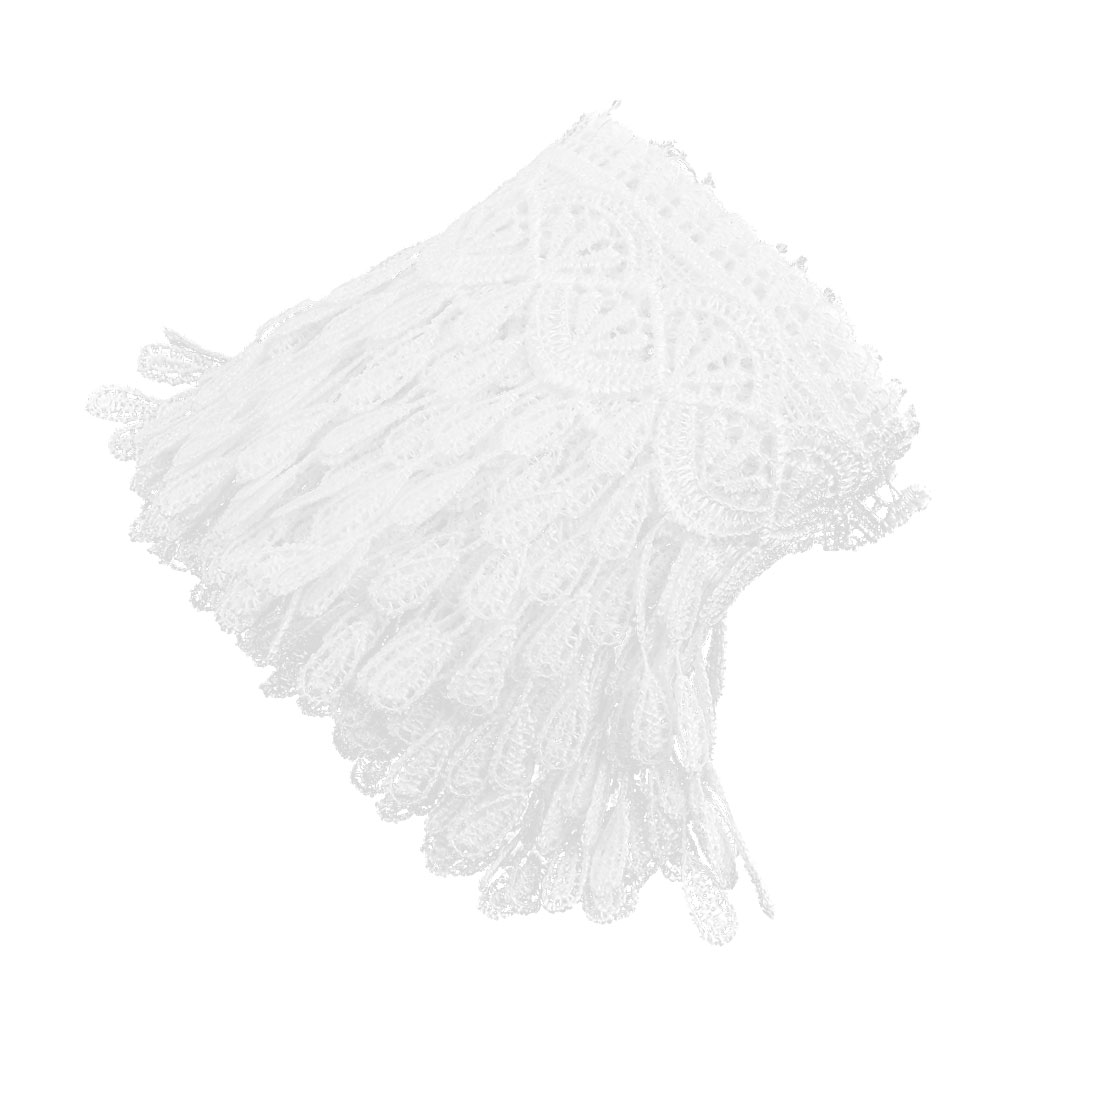 Home Polyester DIY Craft Dress Tassels Lace Trim Applique White 3.4 Inches Width